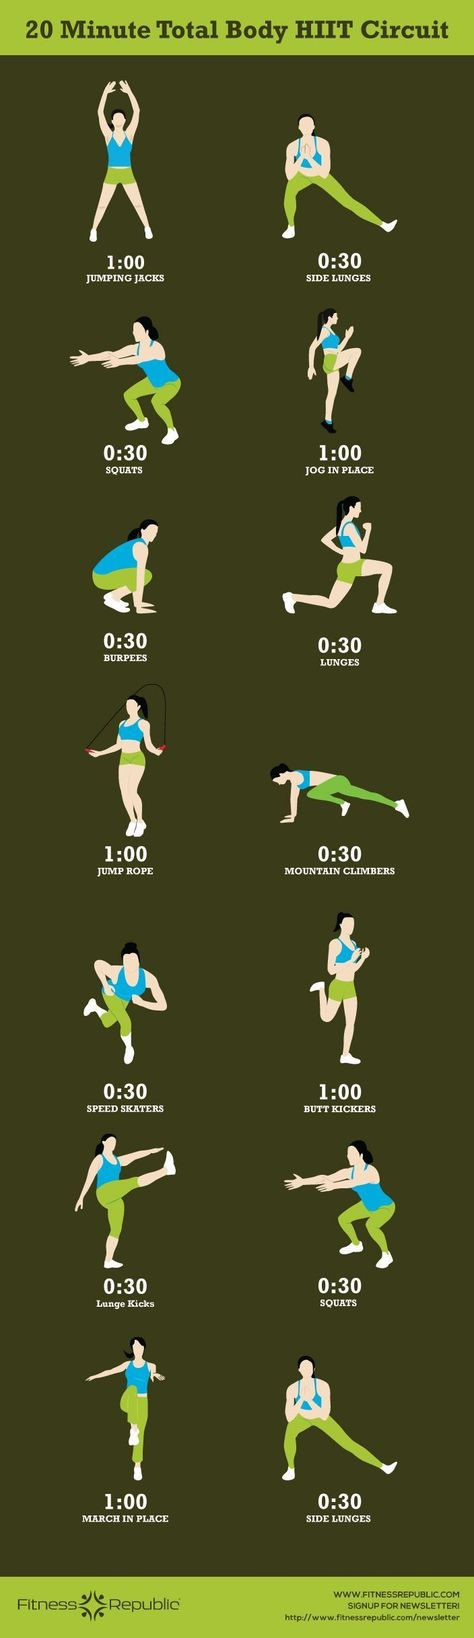 20-Minute Total Body HIIT Circuit find more relevant stuff: victoriajohnson.w